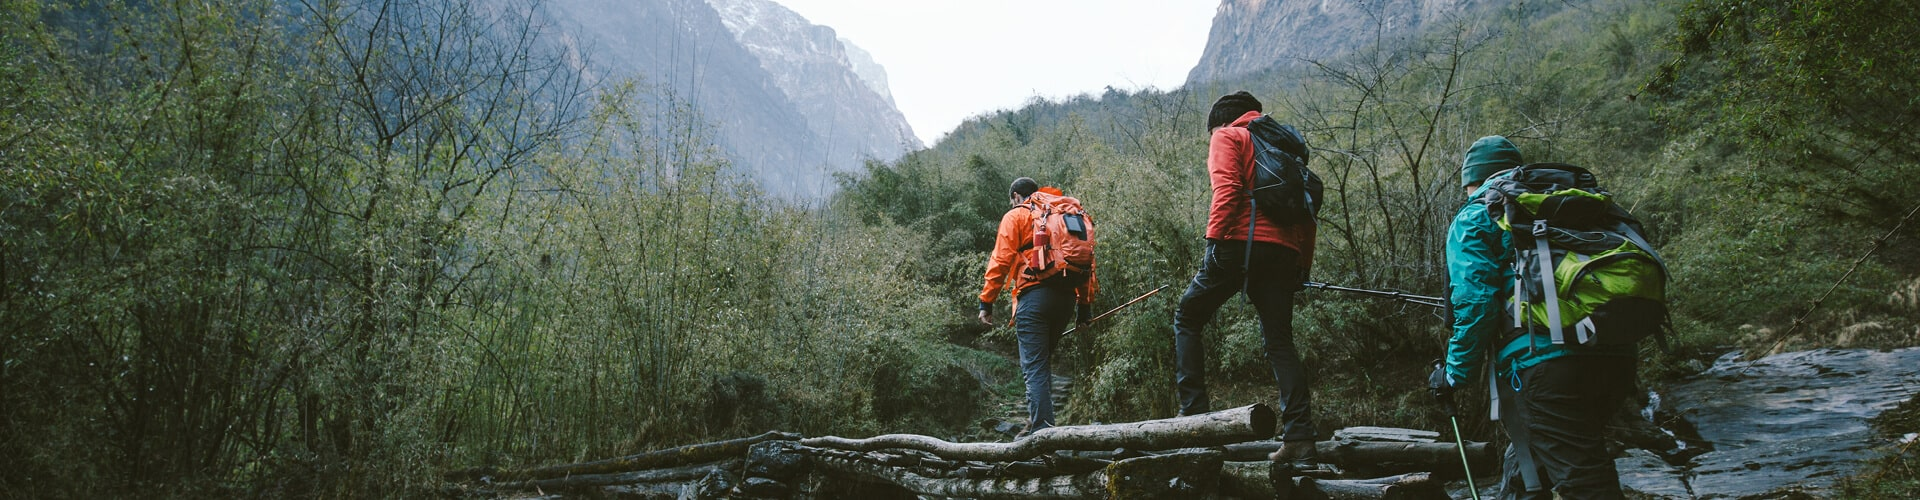 Hikers exploring mountains